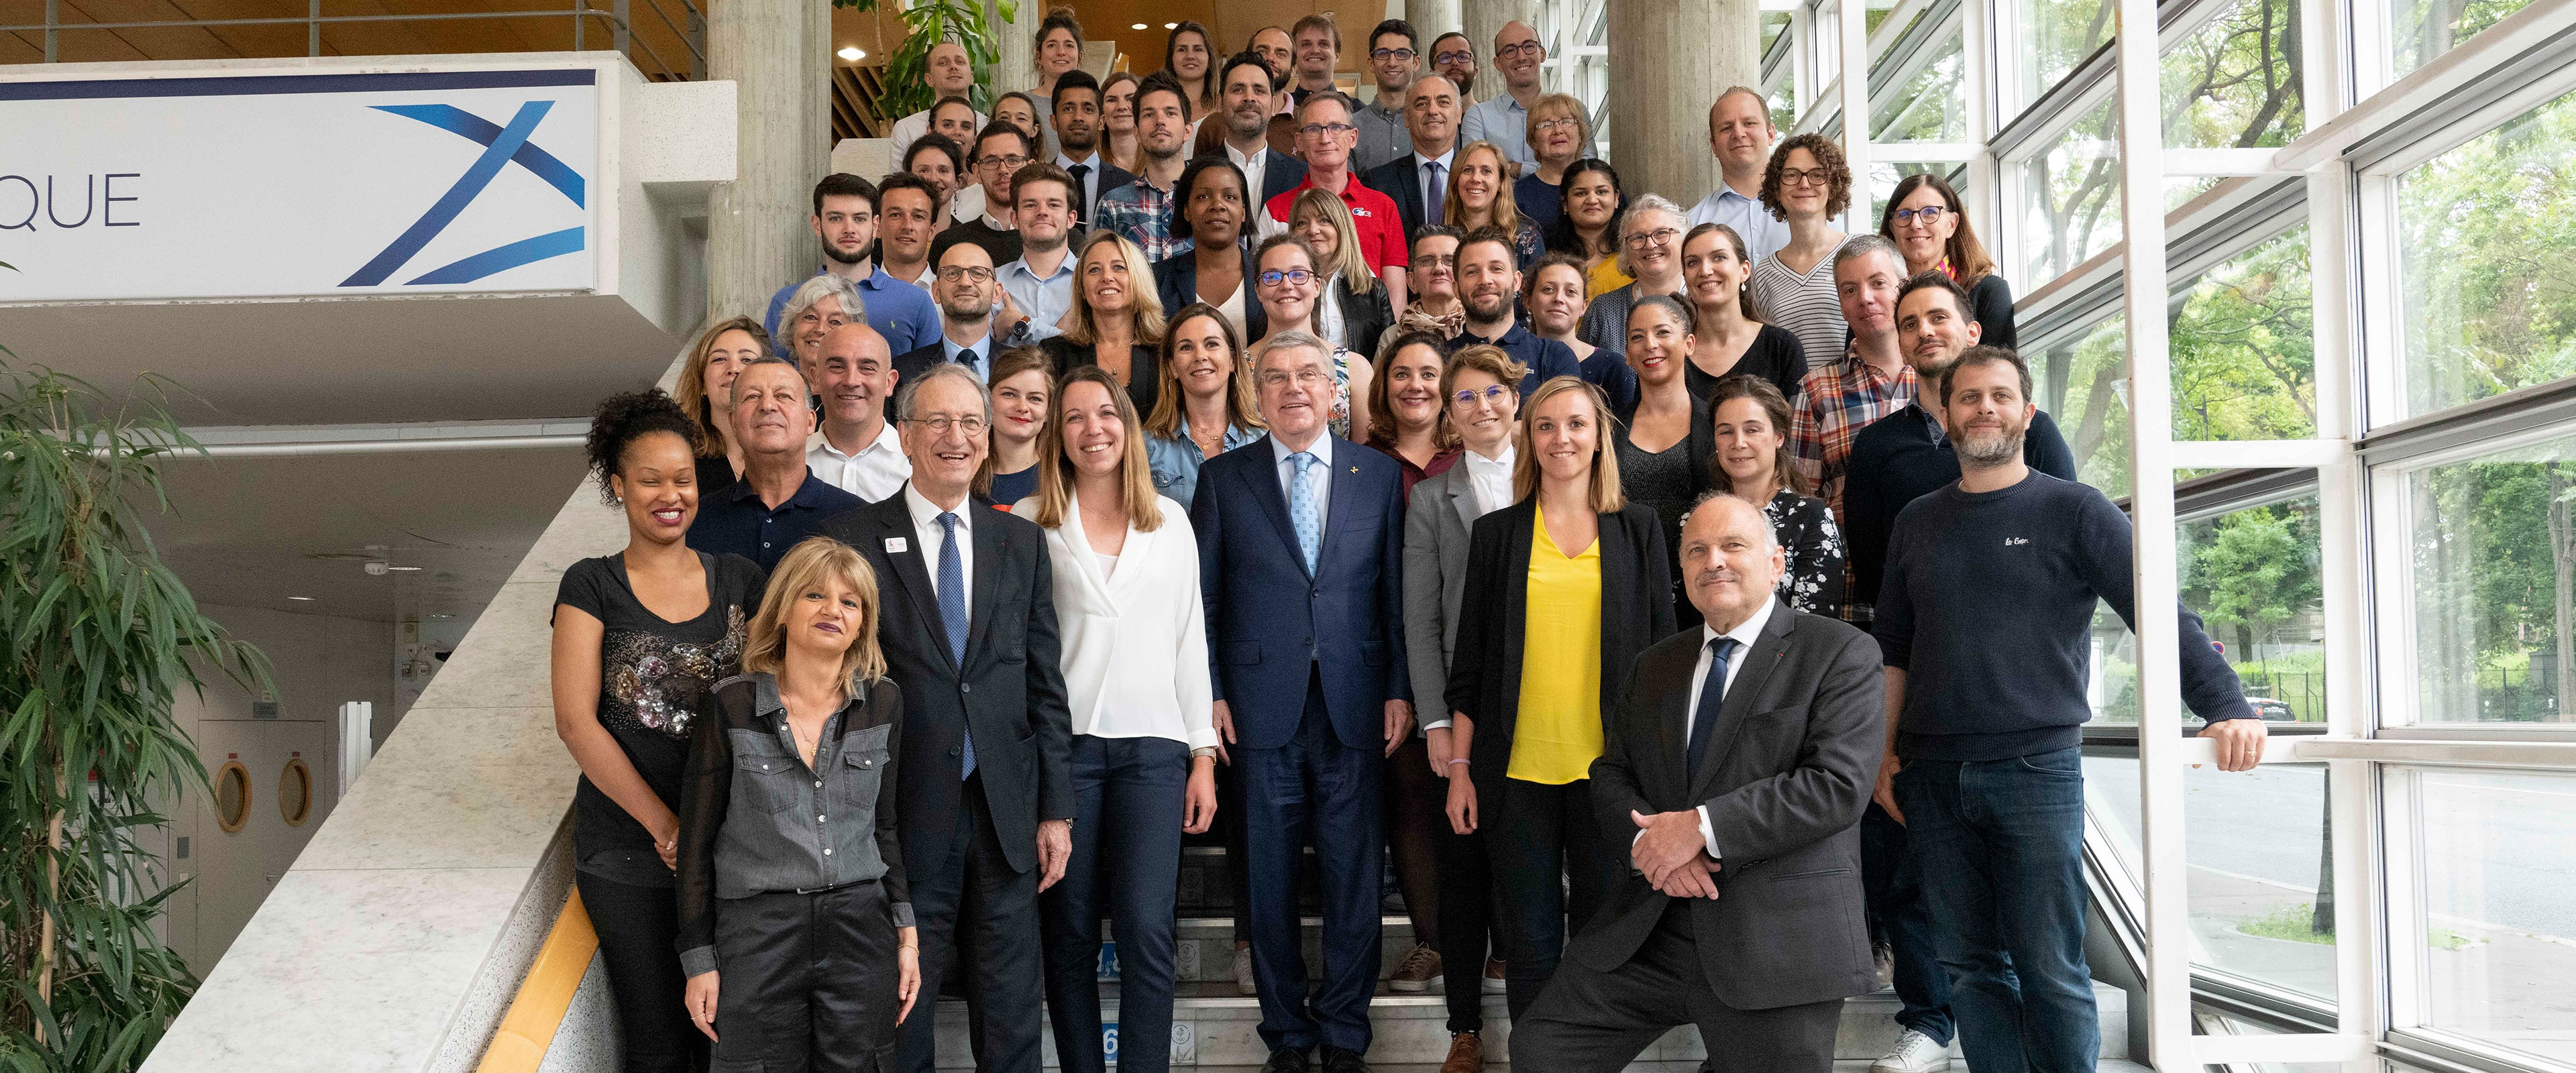 IOC President in Paris